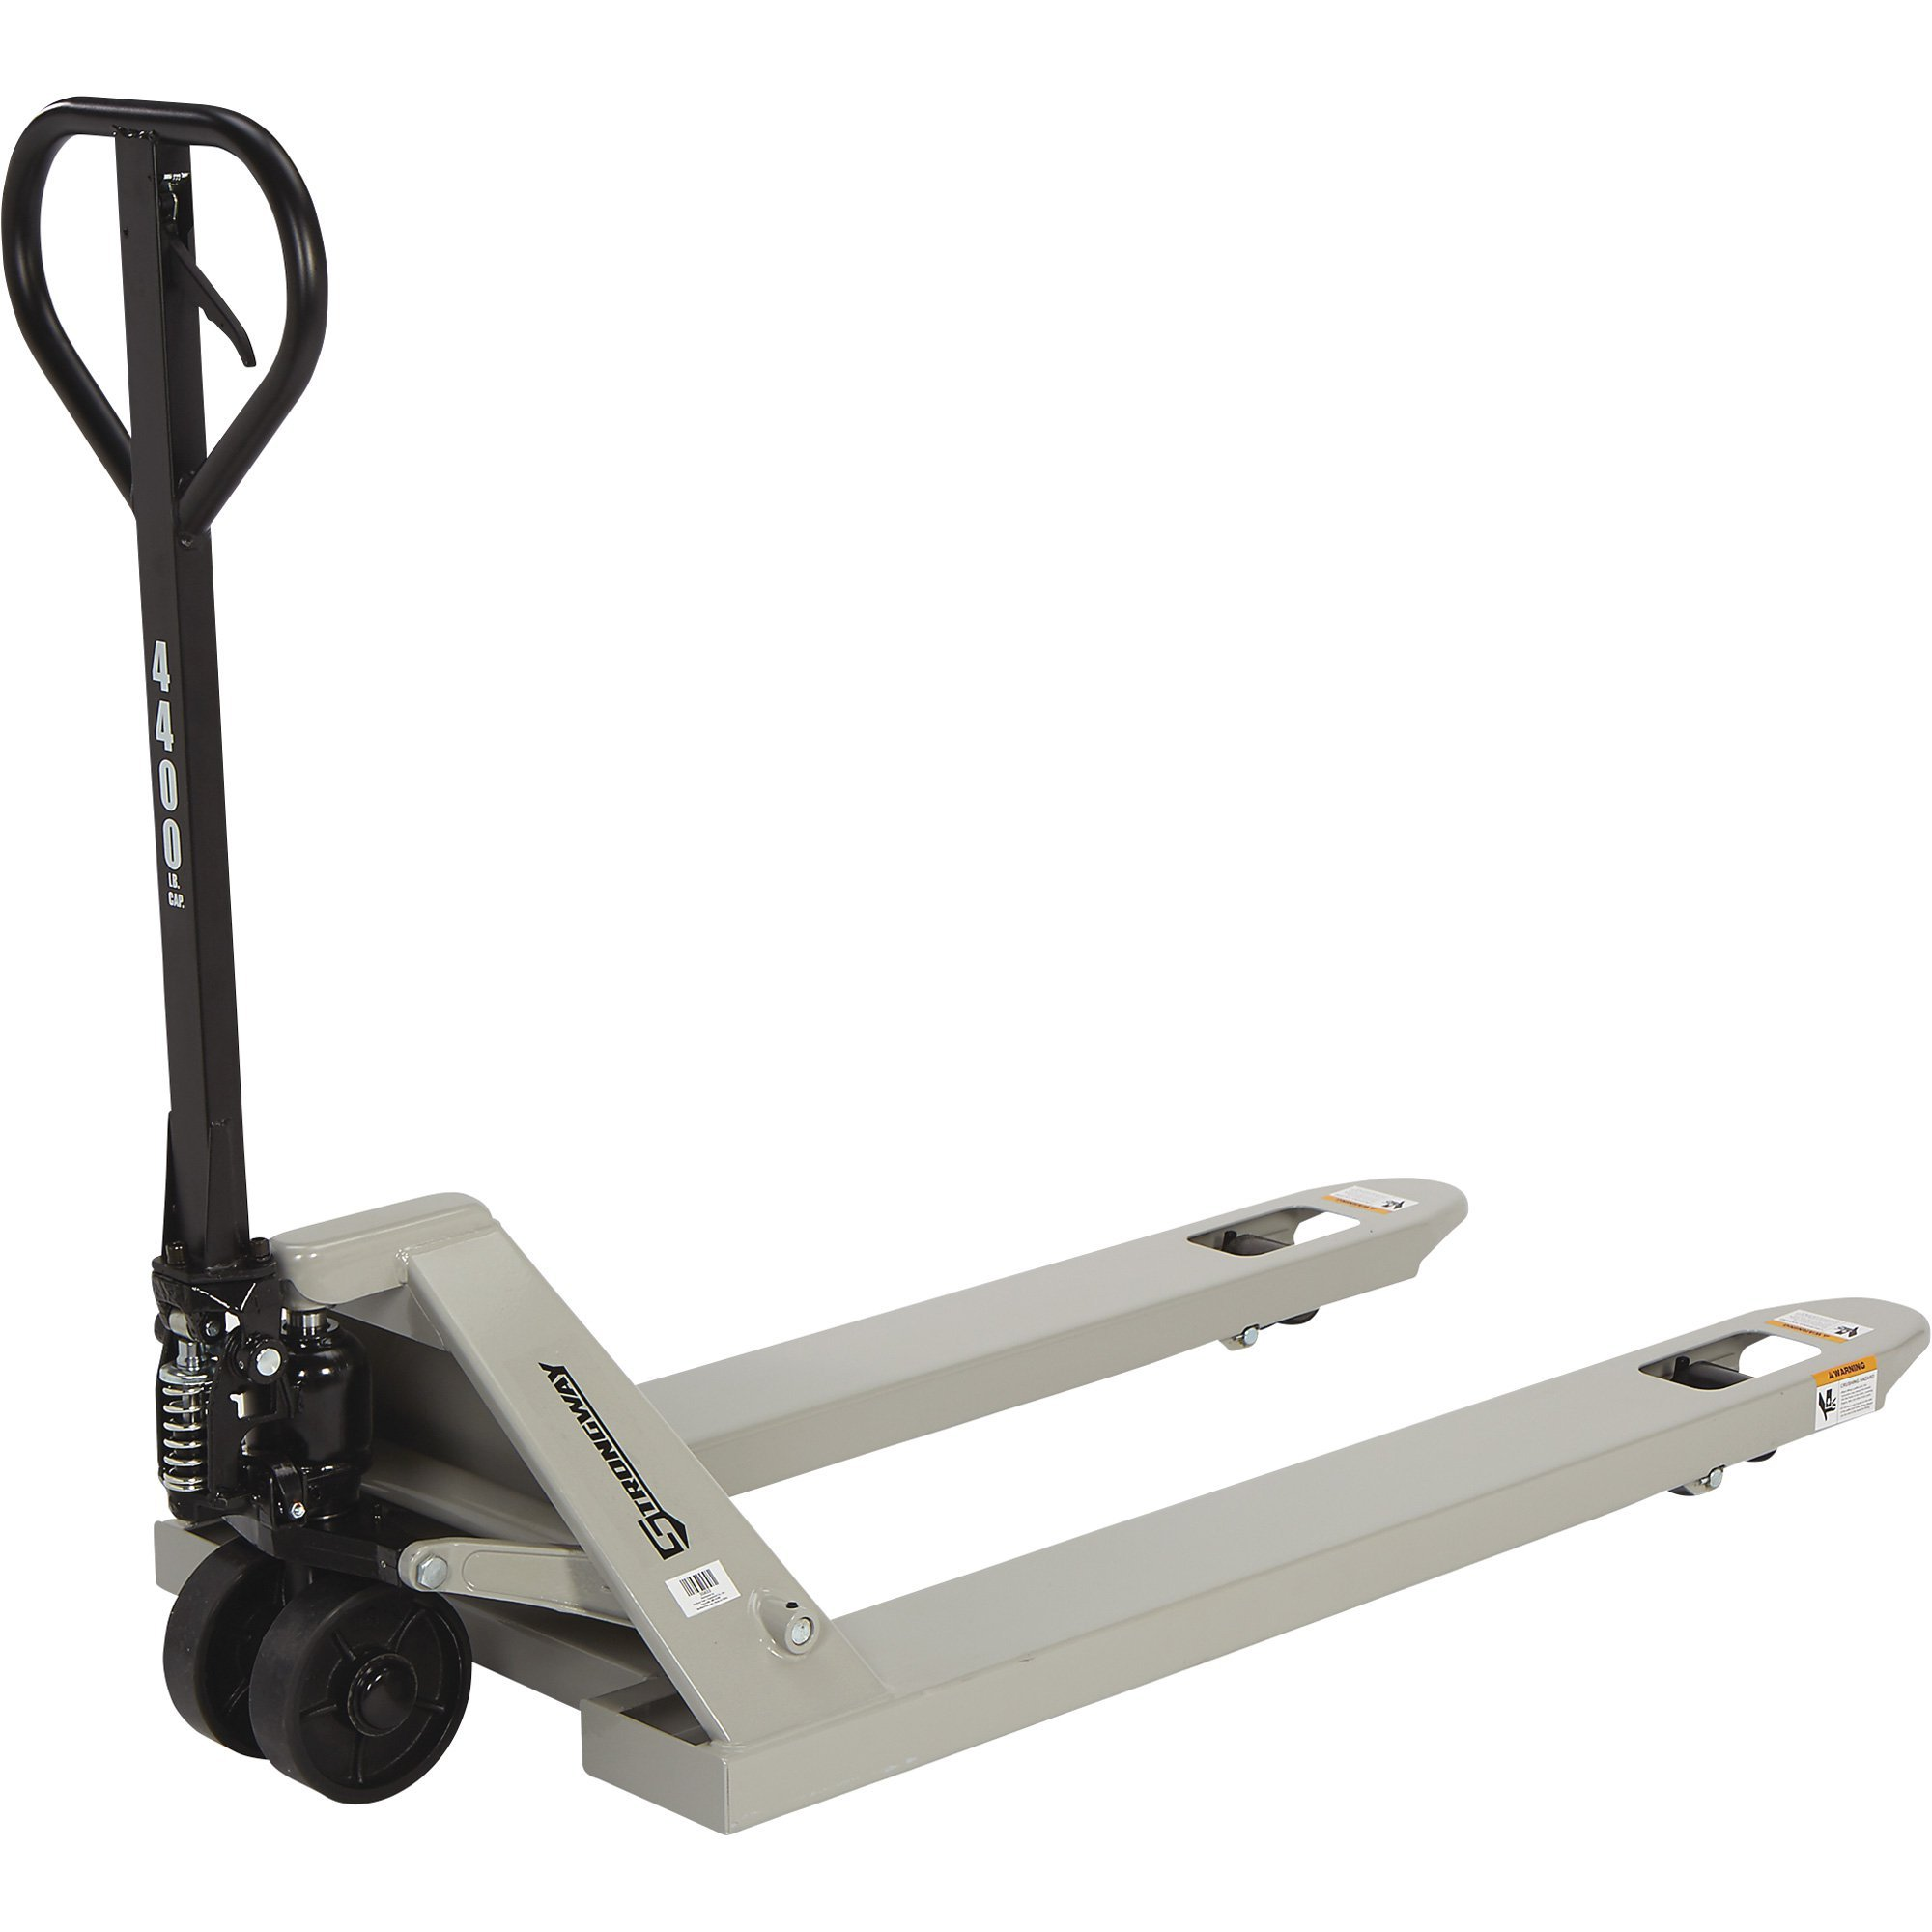 Strongway Pallet Jack - 4400-Lb. Capacity